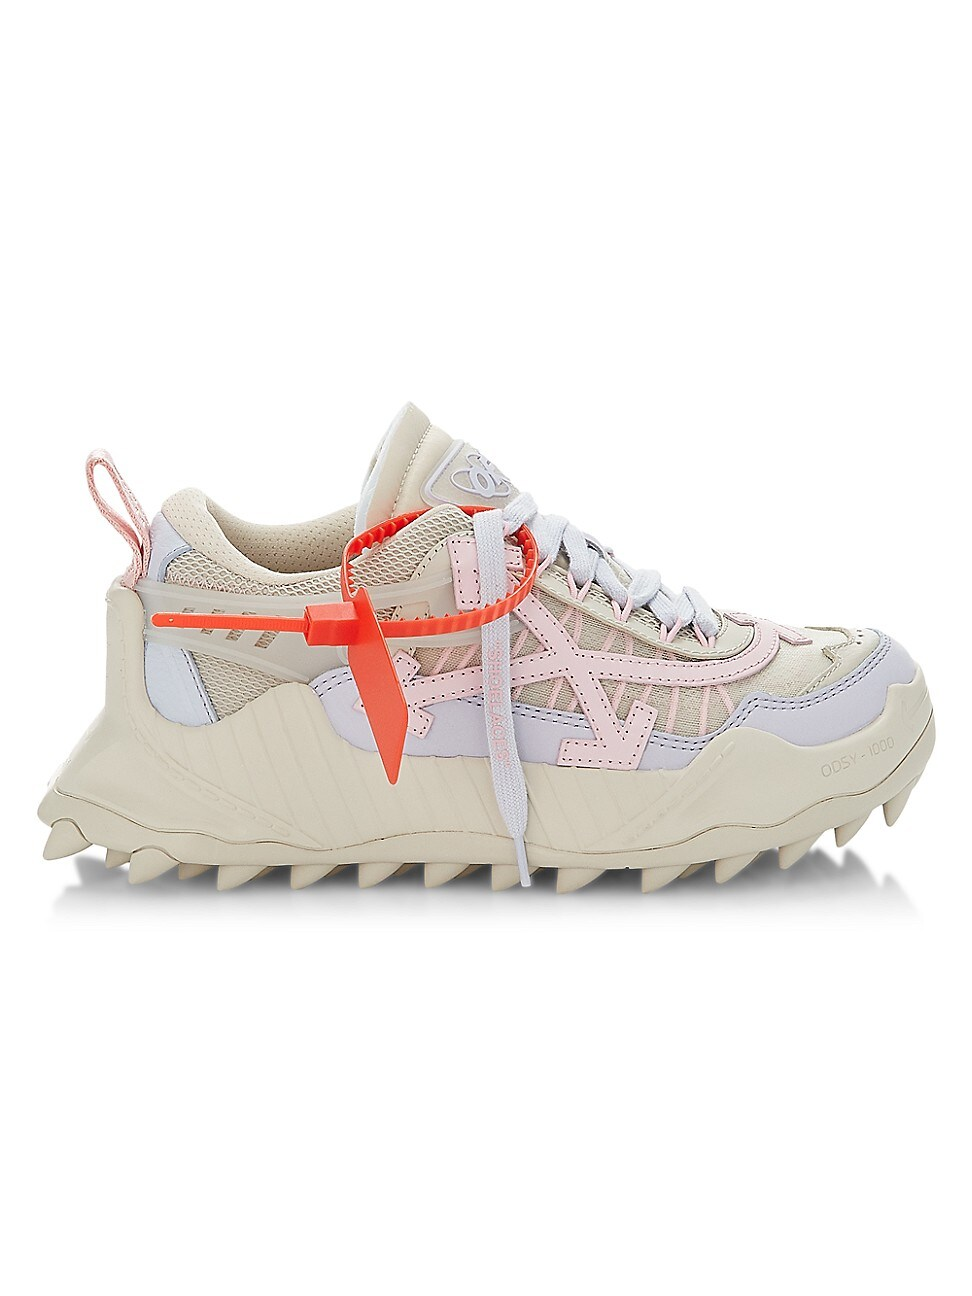 Off-White Leathers WOMEN'S ODSY-1000 LOW-TOP SNEAKERS